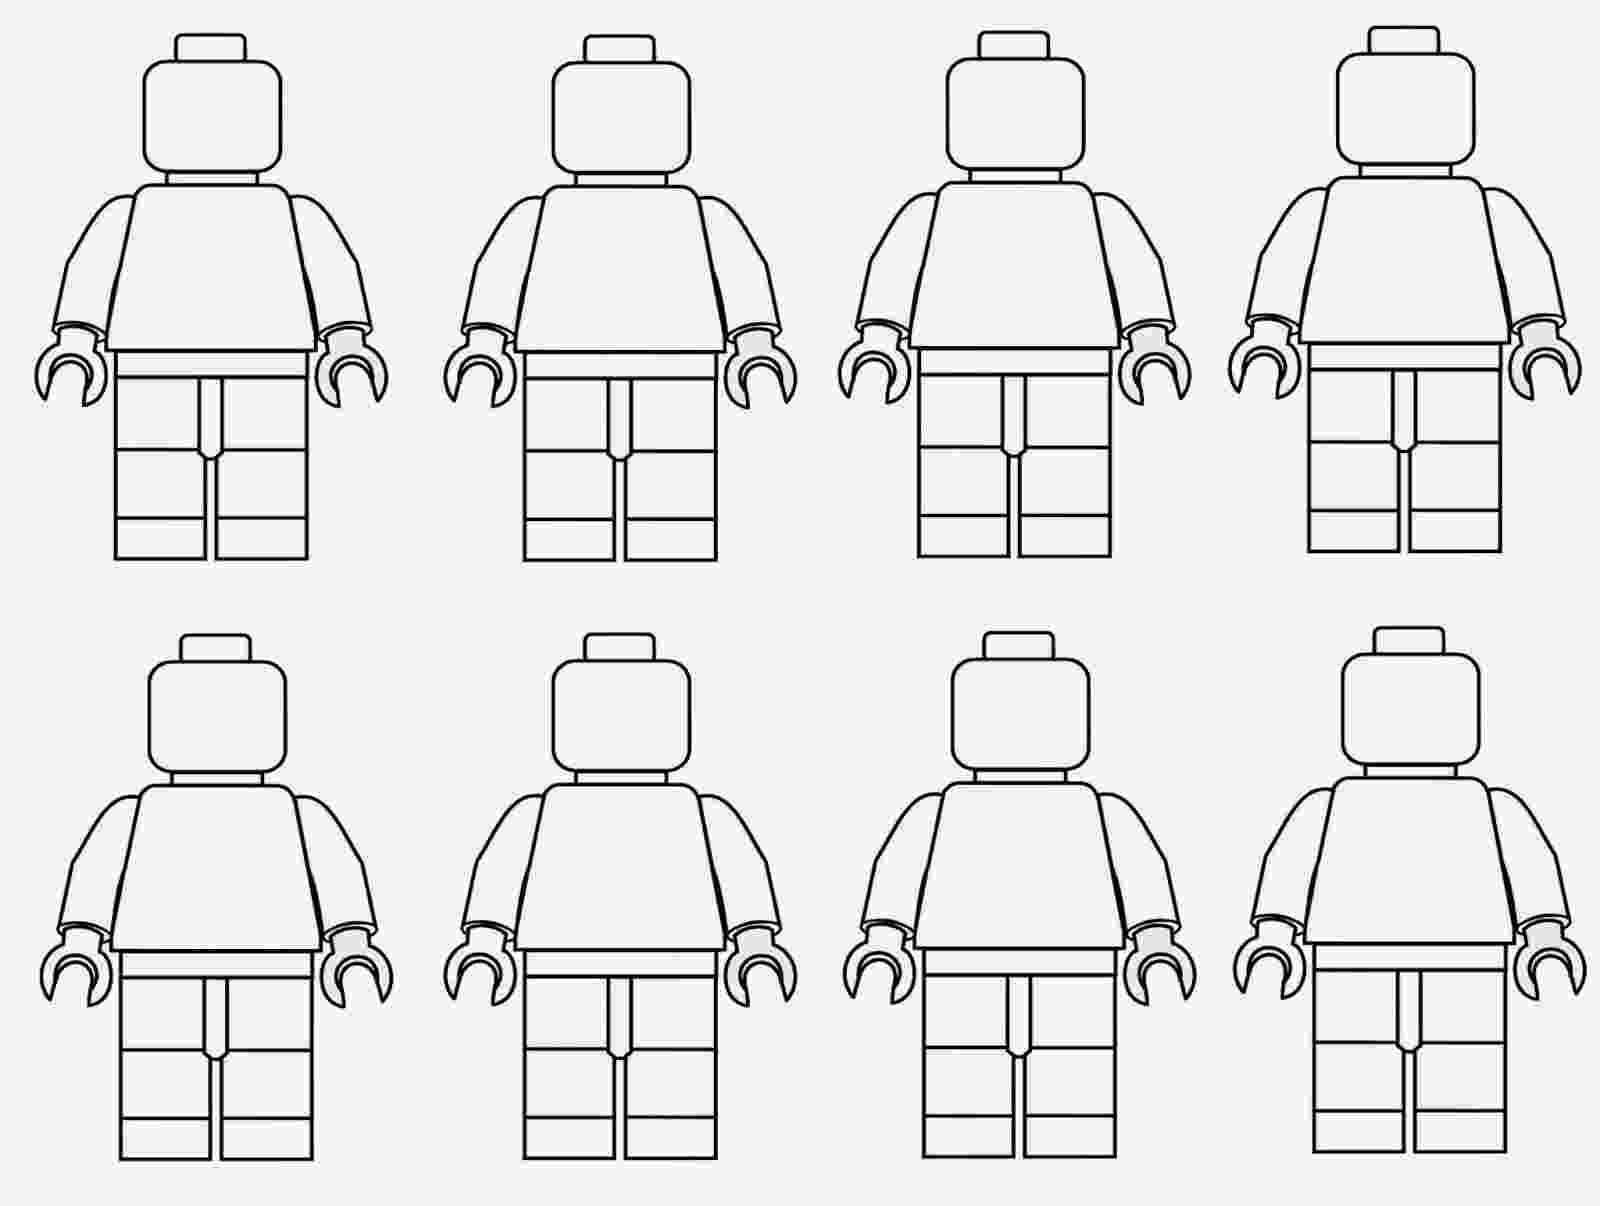 lego man coloring pages free printable lego coloring pages paper trail design coloring man lego pages